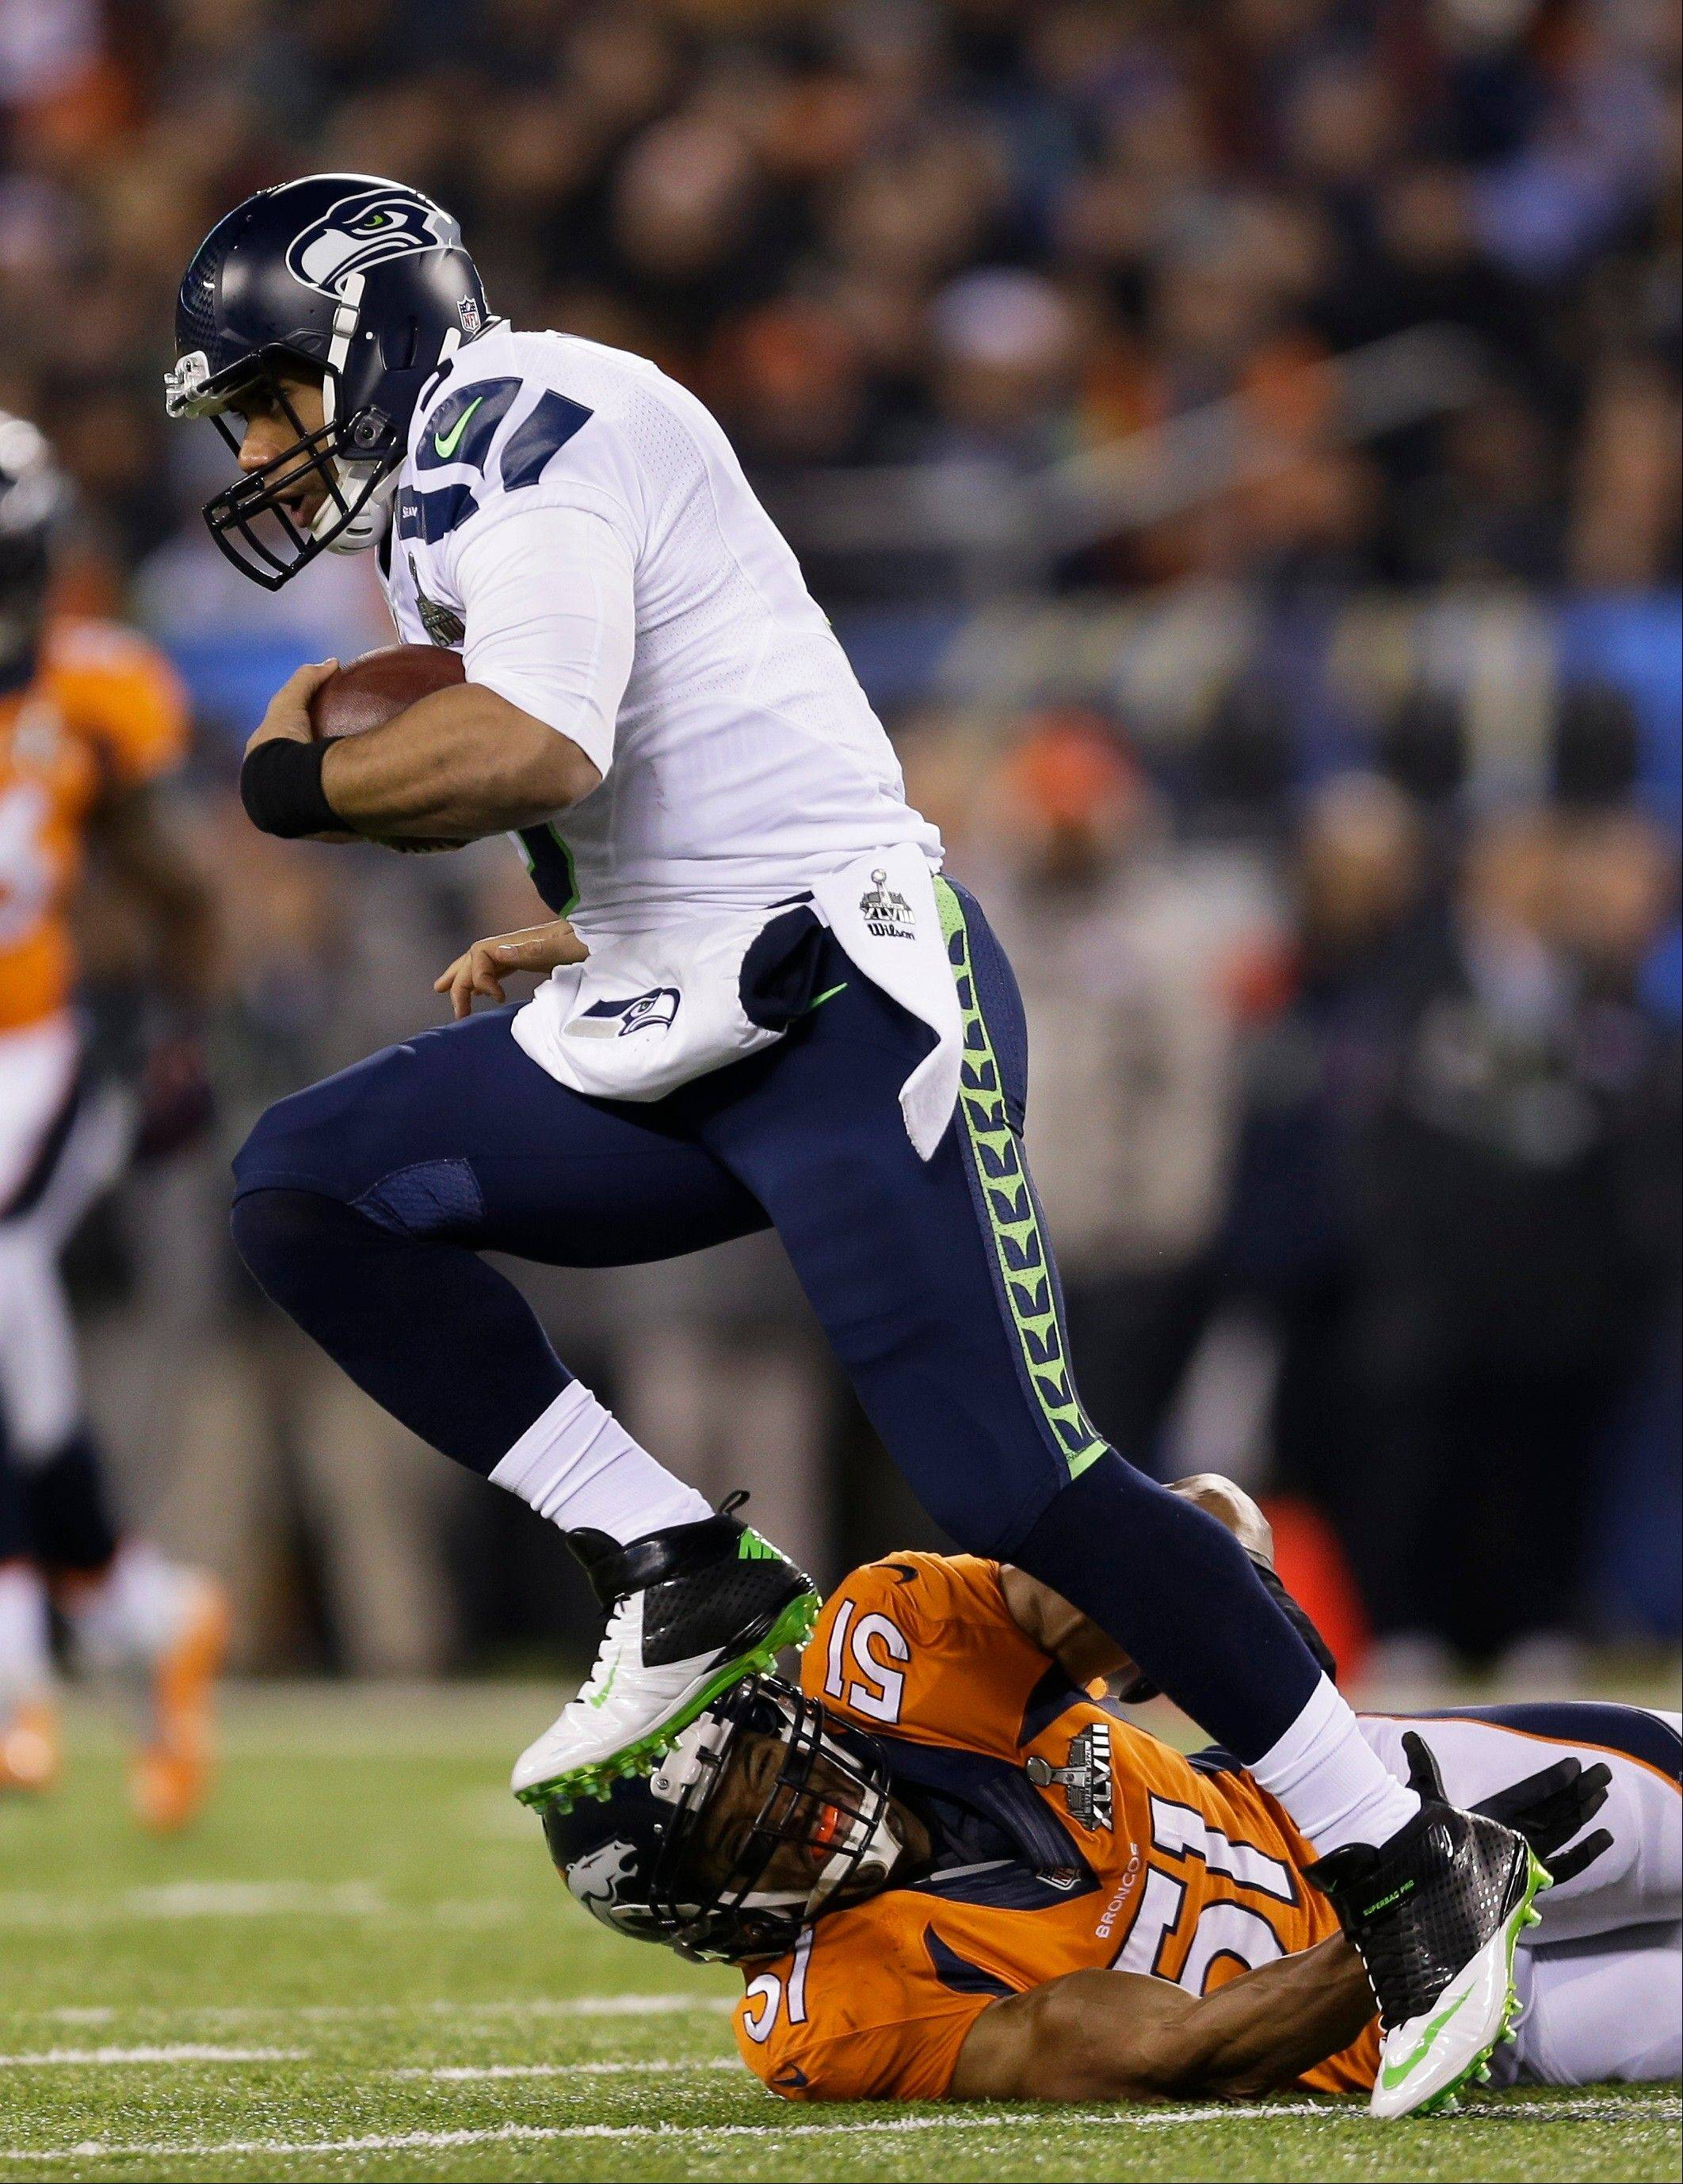 Seahawks quarterback Russell Wilson runs from Broncos defender Paris Lenon during the second half Sunday night.